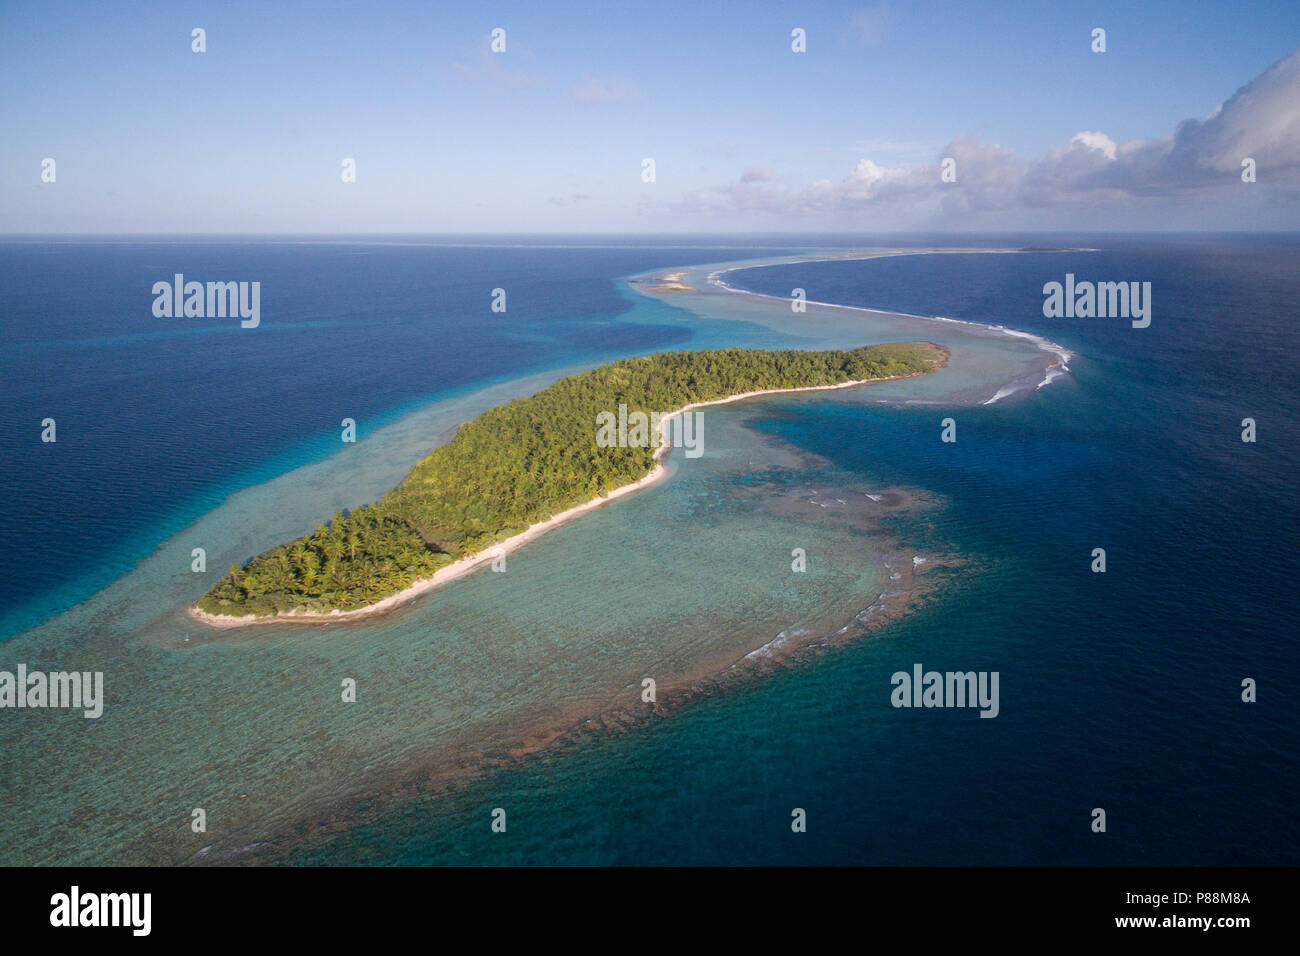 Aerial view of Anchorage Island in Suwarrow Atoll, Cook Islands - Stock Image